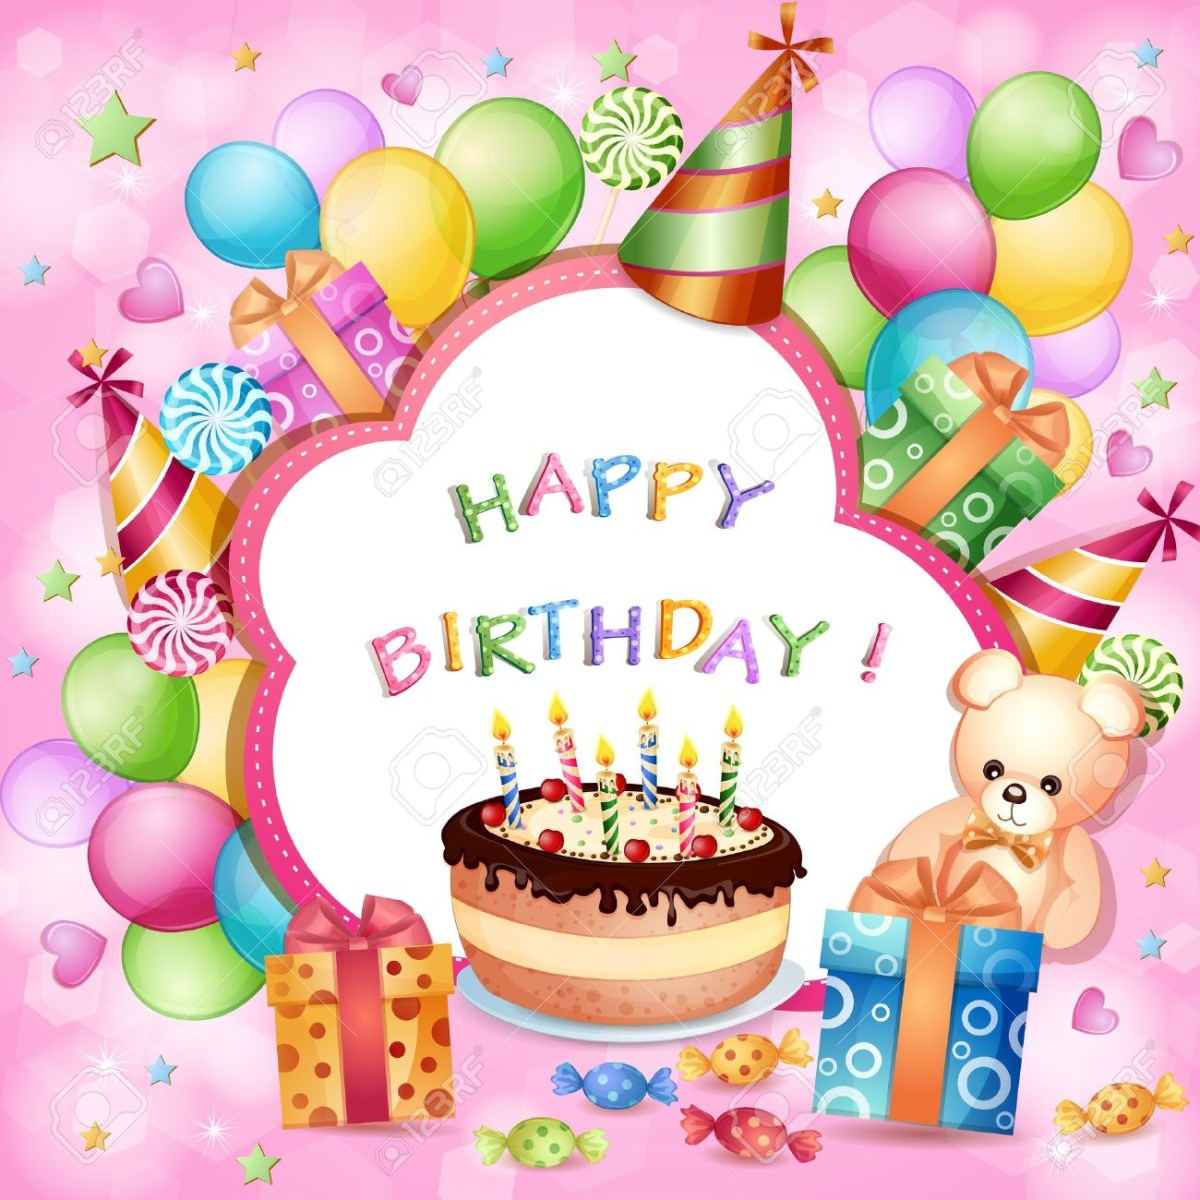 Pleasant Birthday Cake And Balloons Birthday Card With Birthday Cake Personalised Birthday Cards Veneteletsinfo